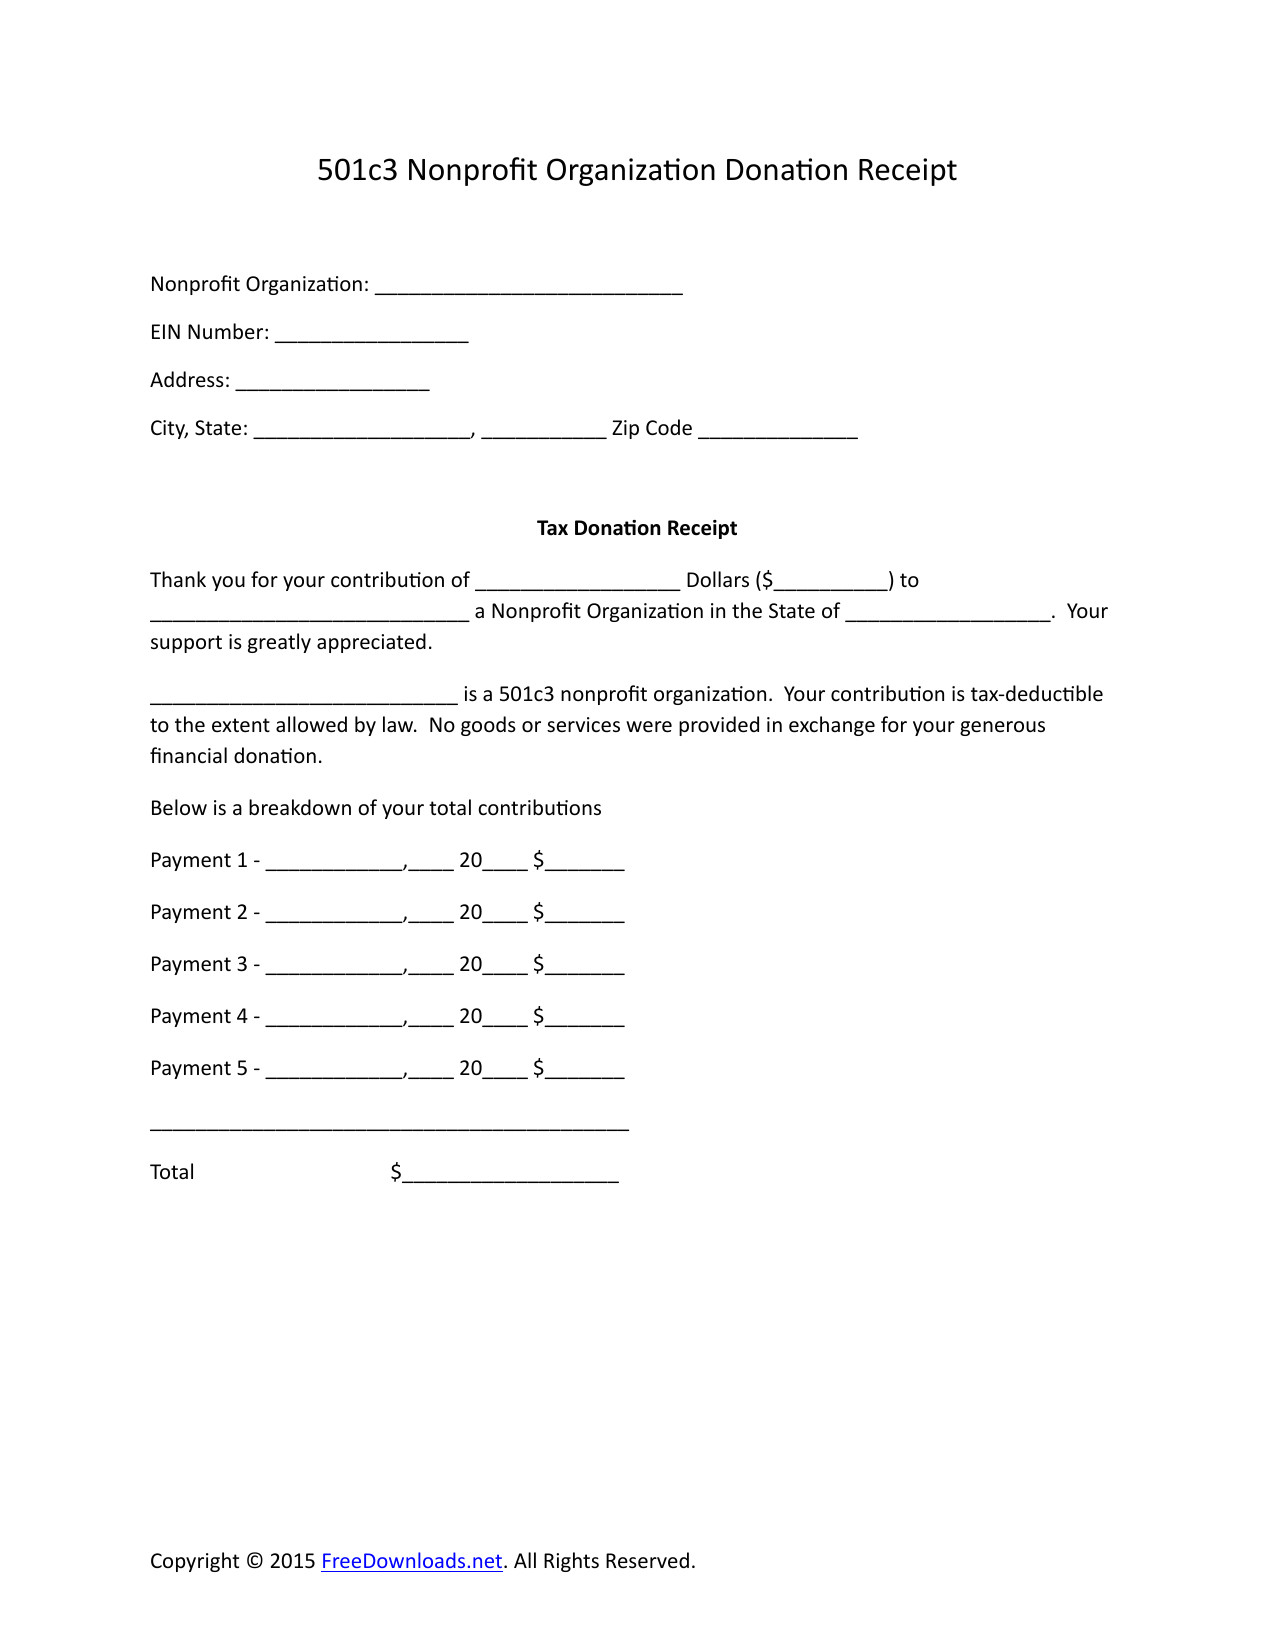 501c3 donation receipt letter for tax purposes